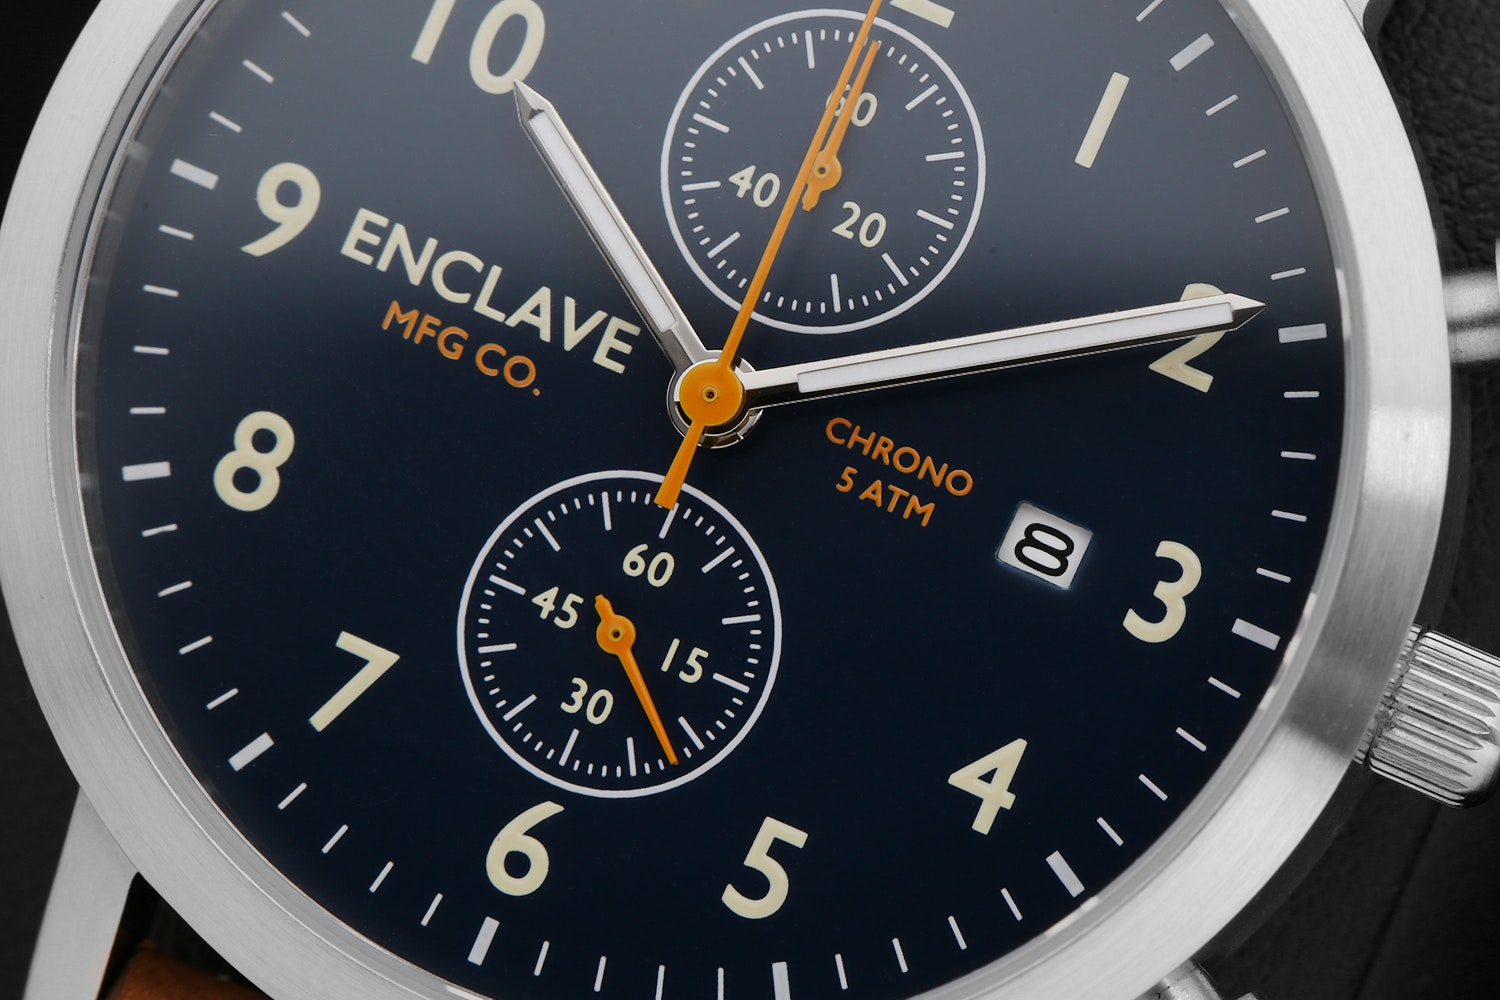 Enclave Chrono Watch